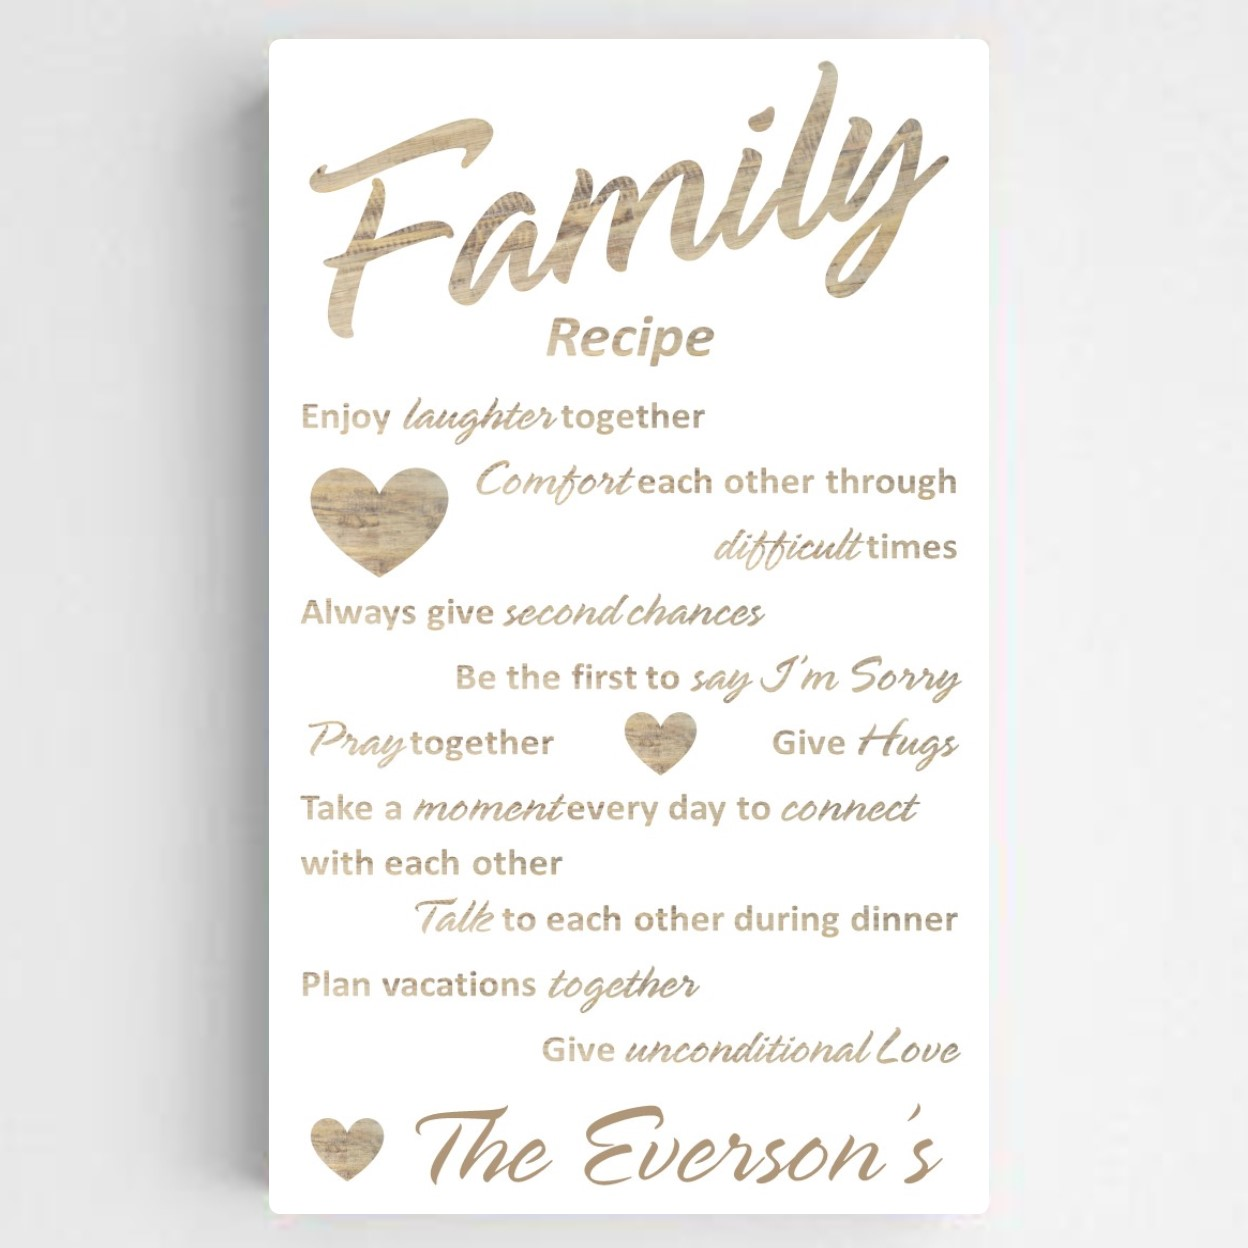 Best 50th wedding anniversary gift ideas for your parents for Best gift for wedding anniversary